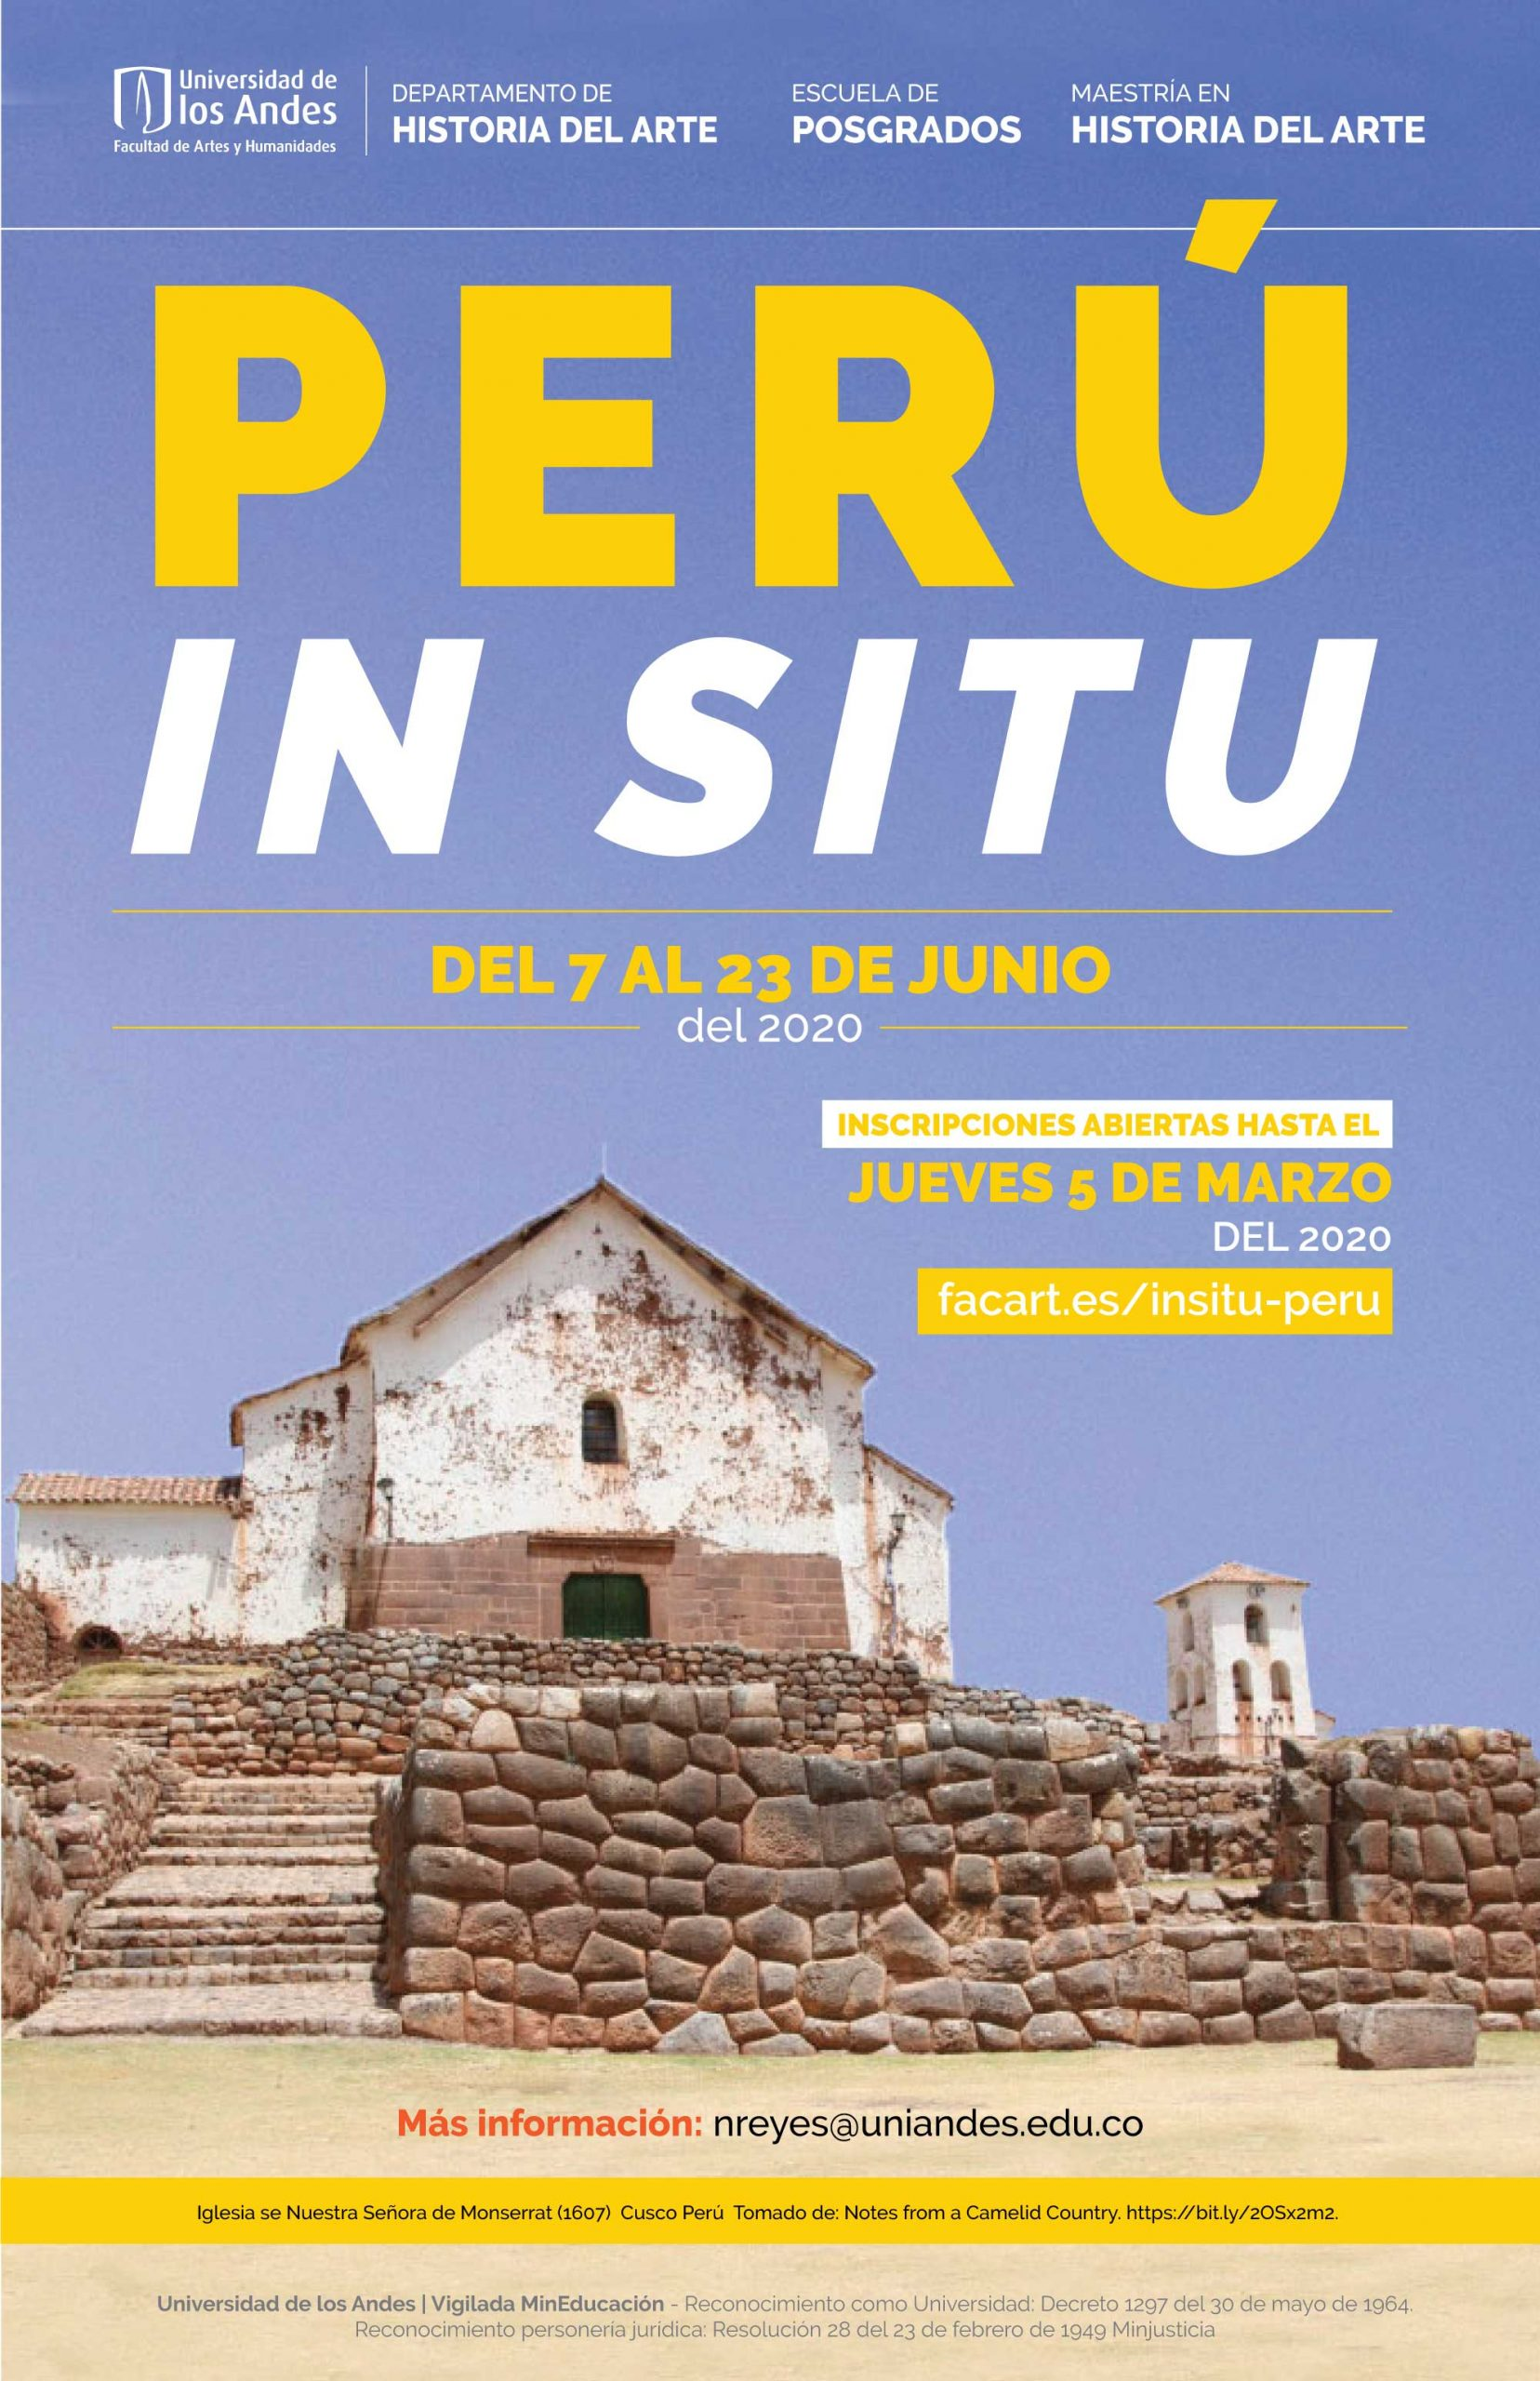 Perú in situ